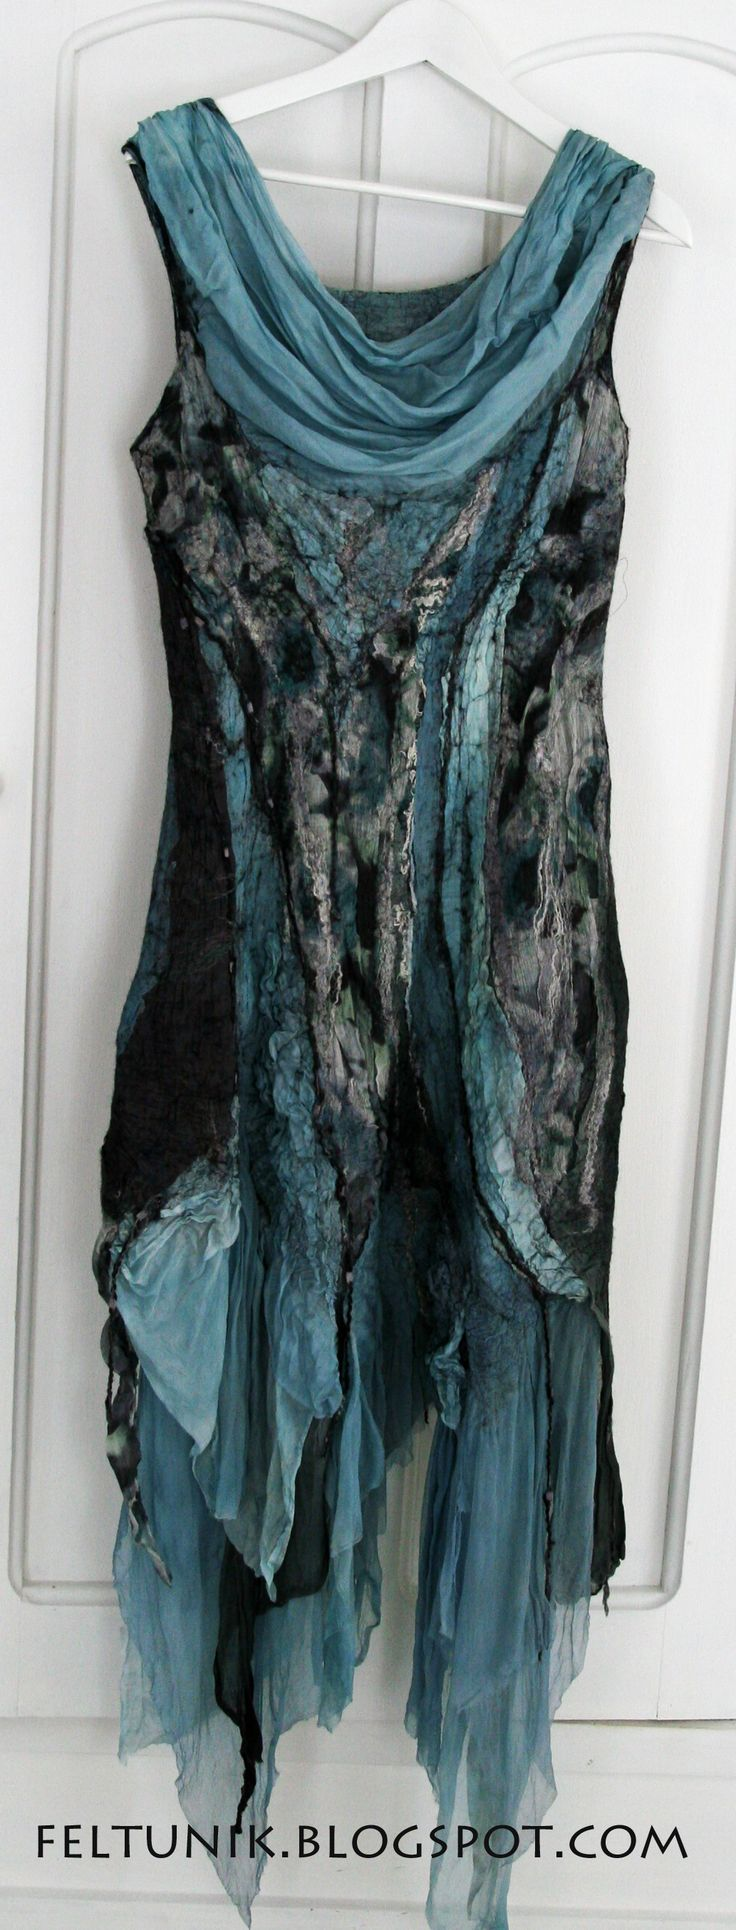 black and dusty teal tunic -ethereal layers of lightweight fabrics - could use old scarves